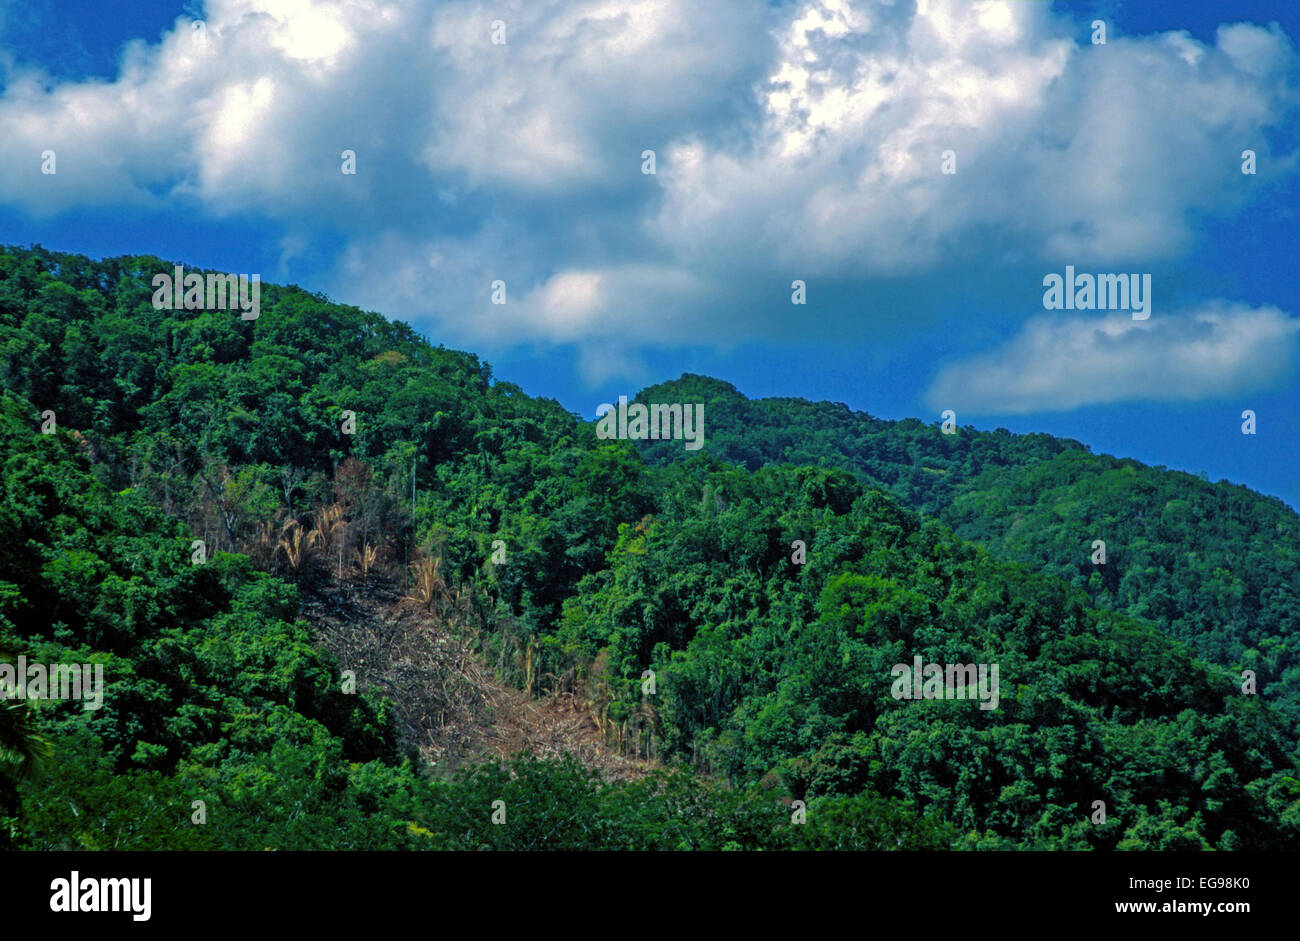 Shifting cultivation on a steep slope. This field was recently converted from tropical rainforest to agricultural - Stock Image